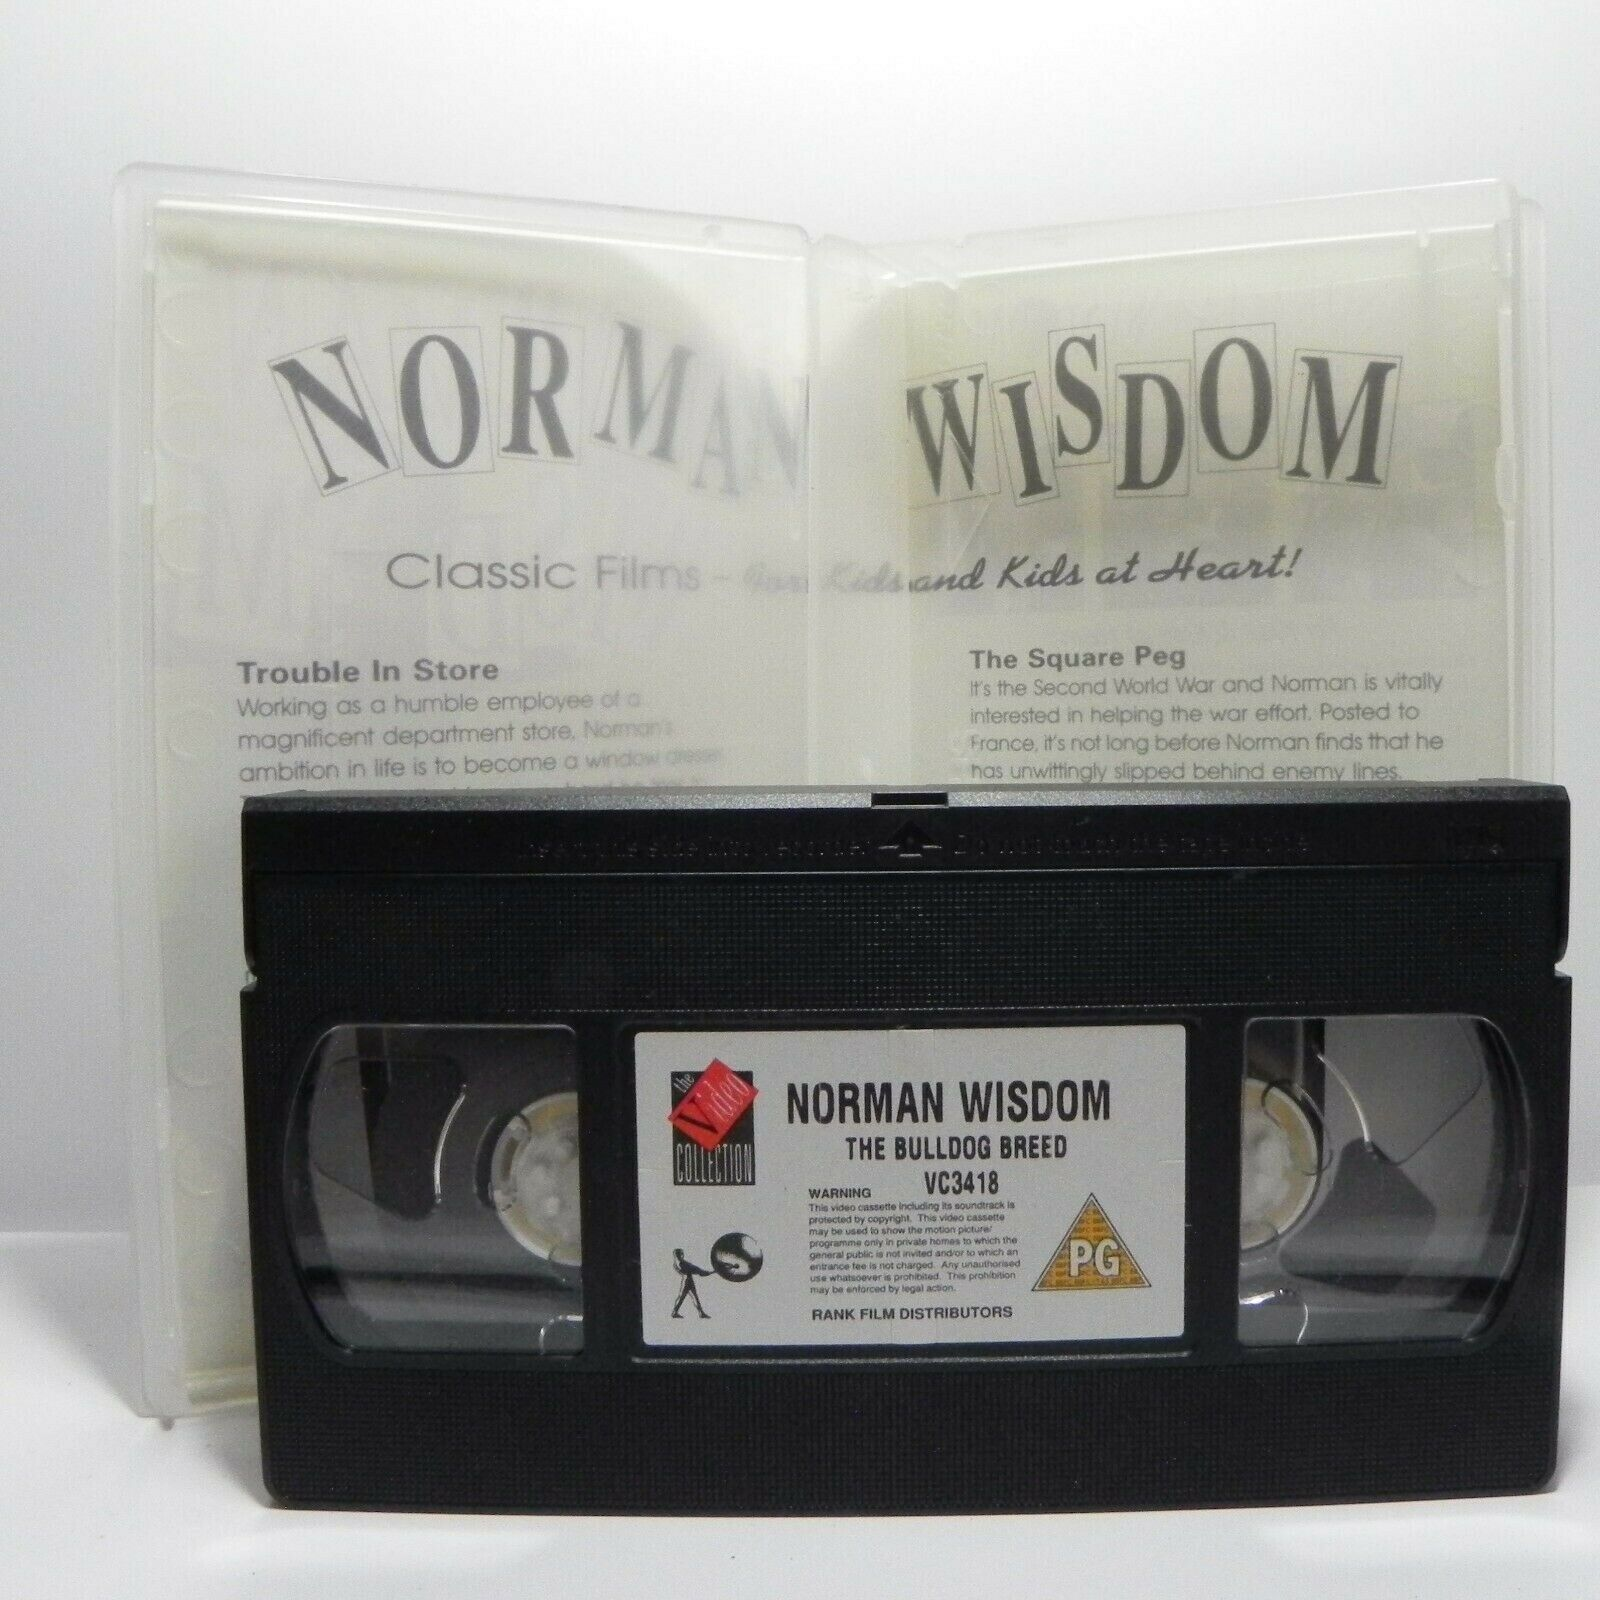 Norman Wisdom: The Bulldog Breed - Adventures - I.Hunter/D.Lodge - Pal VHS